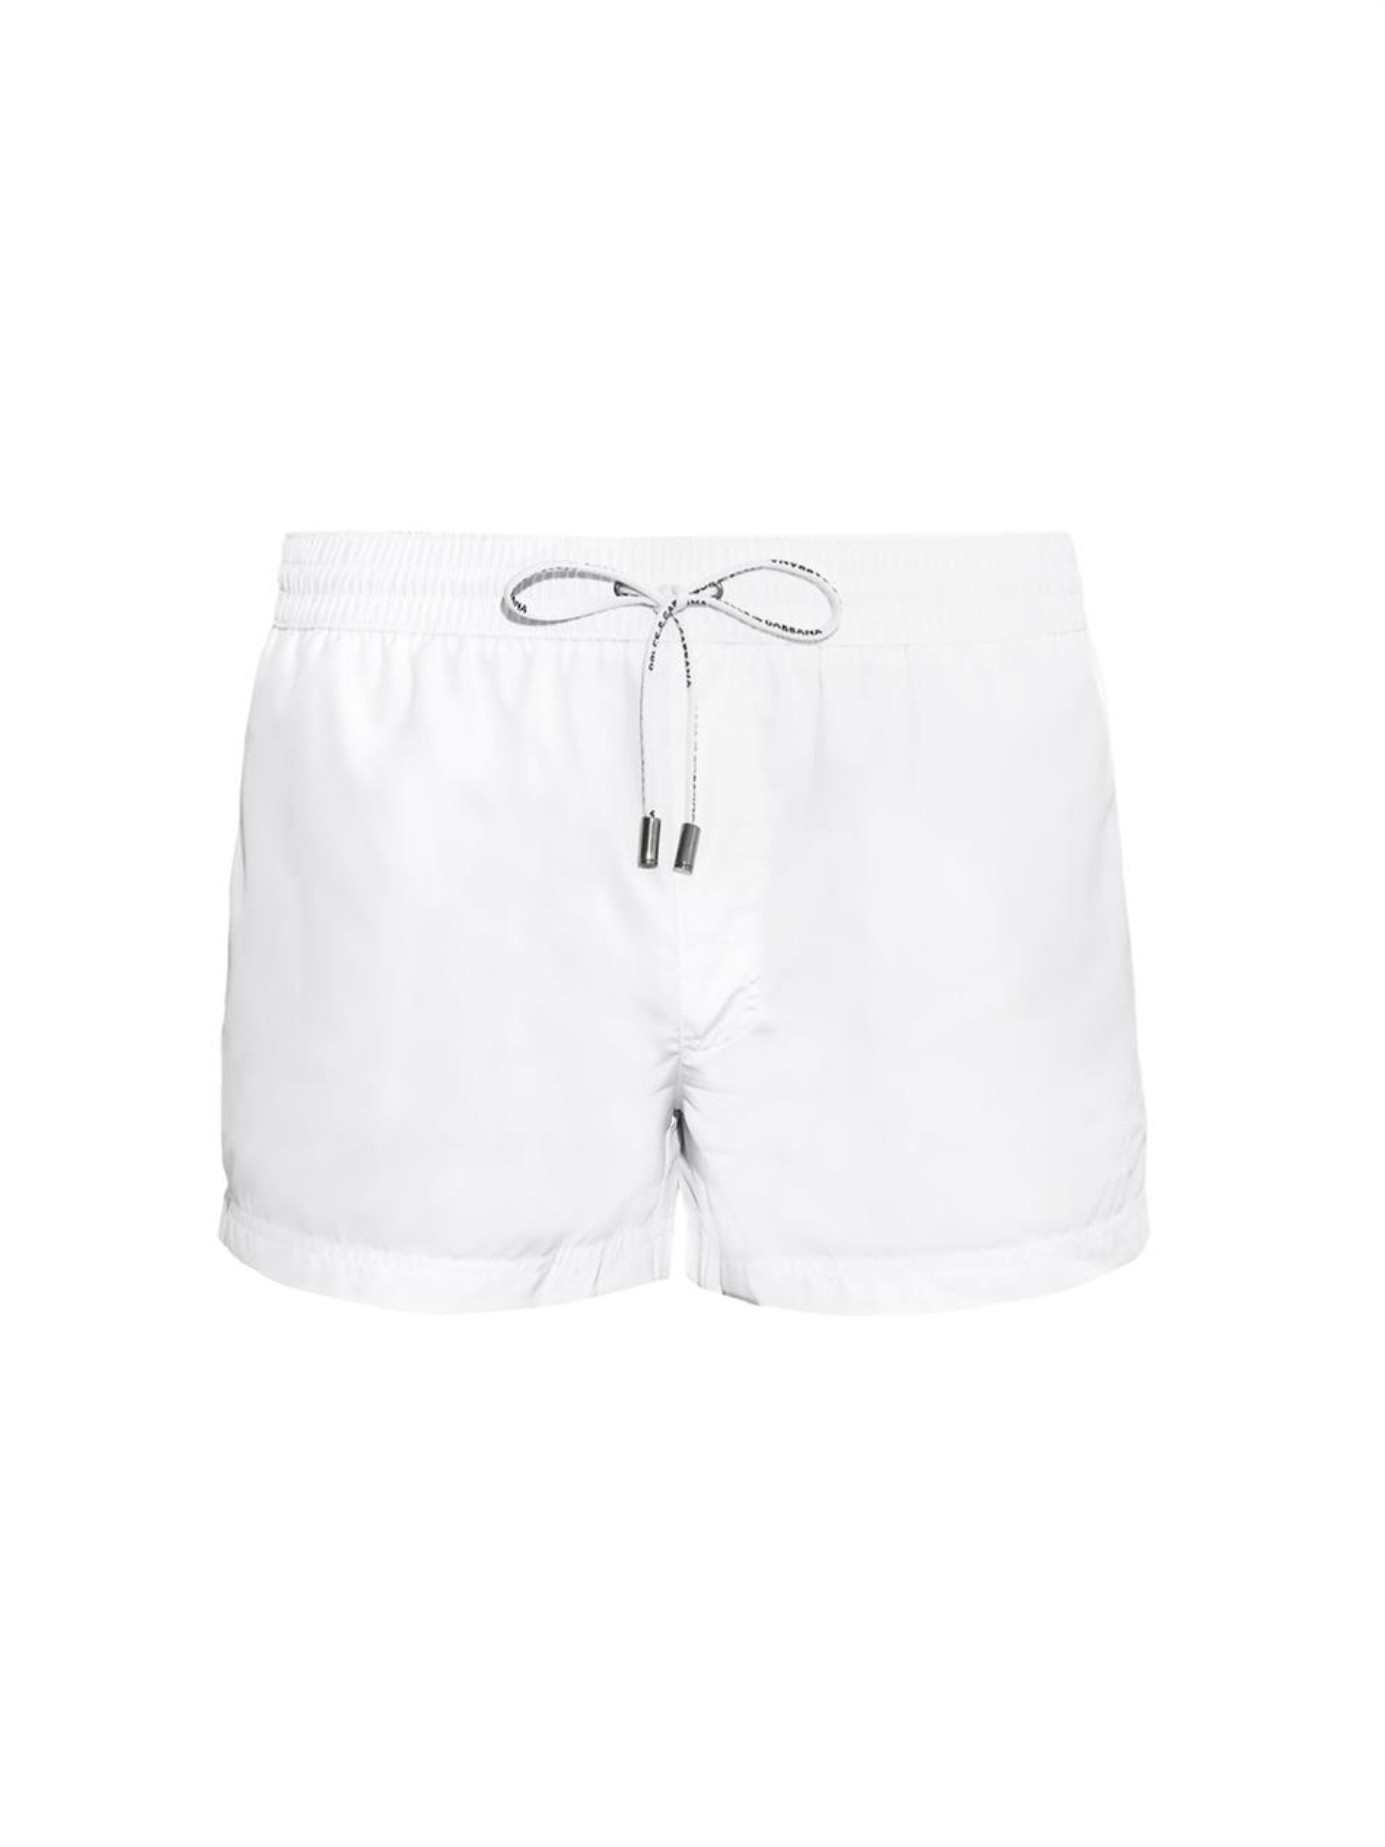 7b8faf30c5 Dolce & Gabbana Crest-Embroidered Swim Shorts in White for Men - Lyst